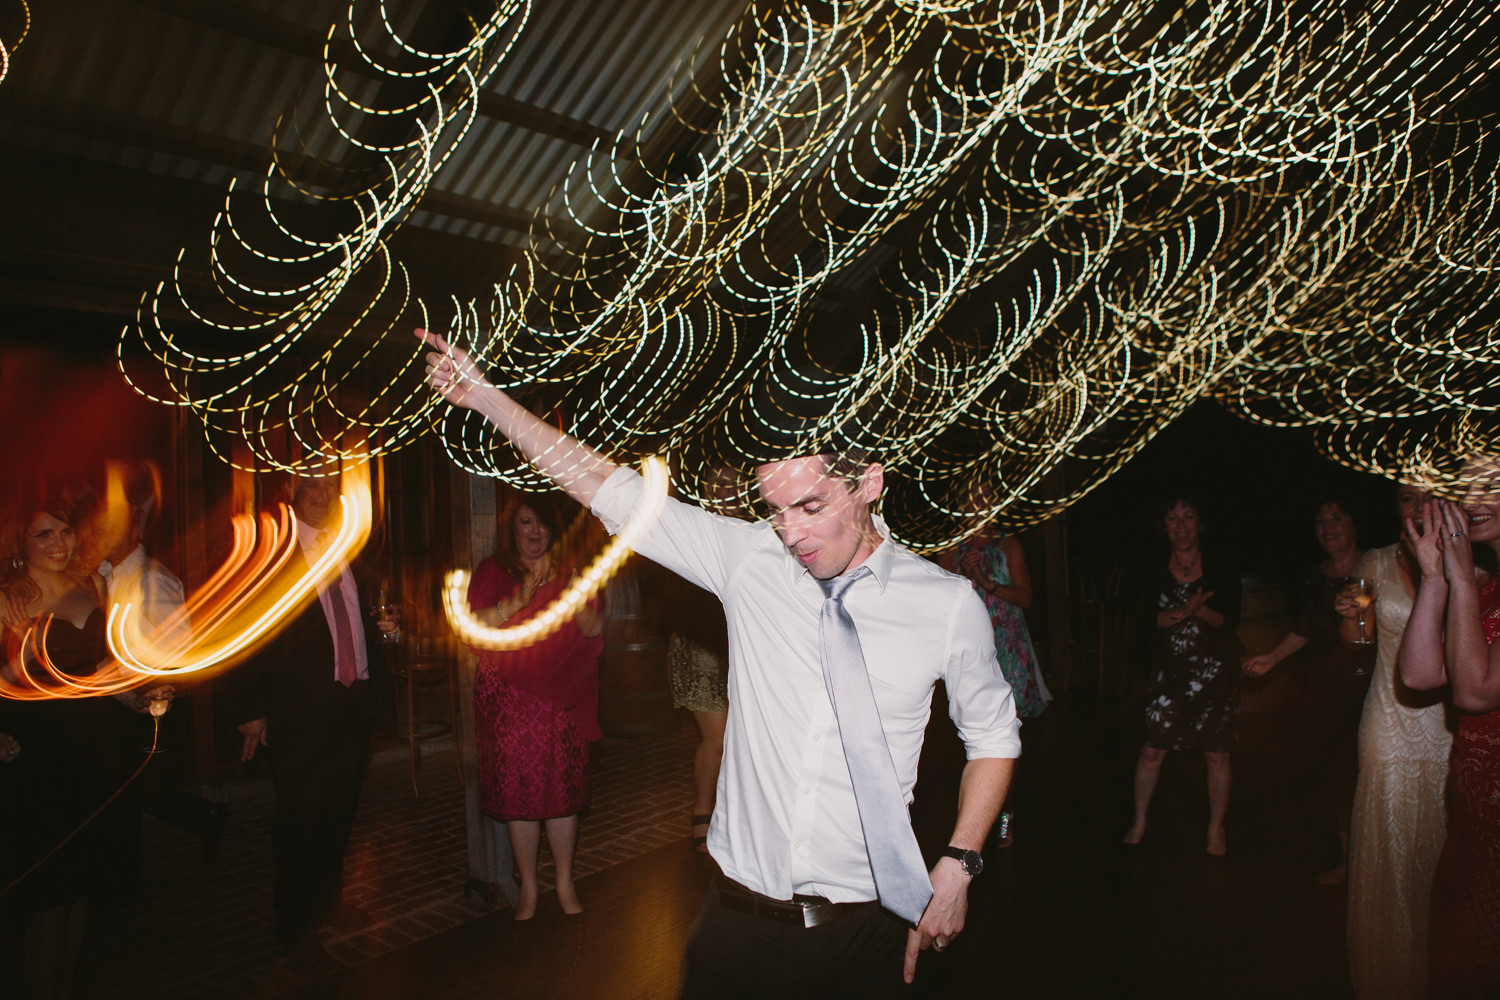 Brides brother dancing the night away to celebrate